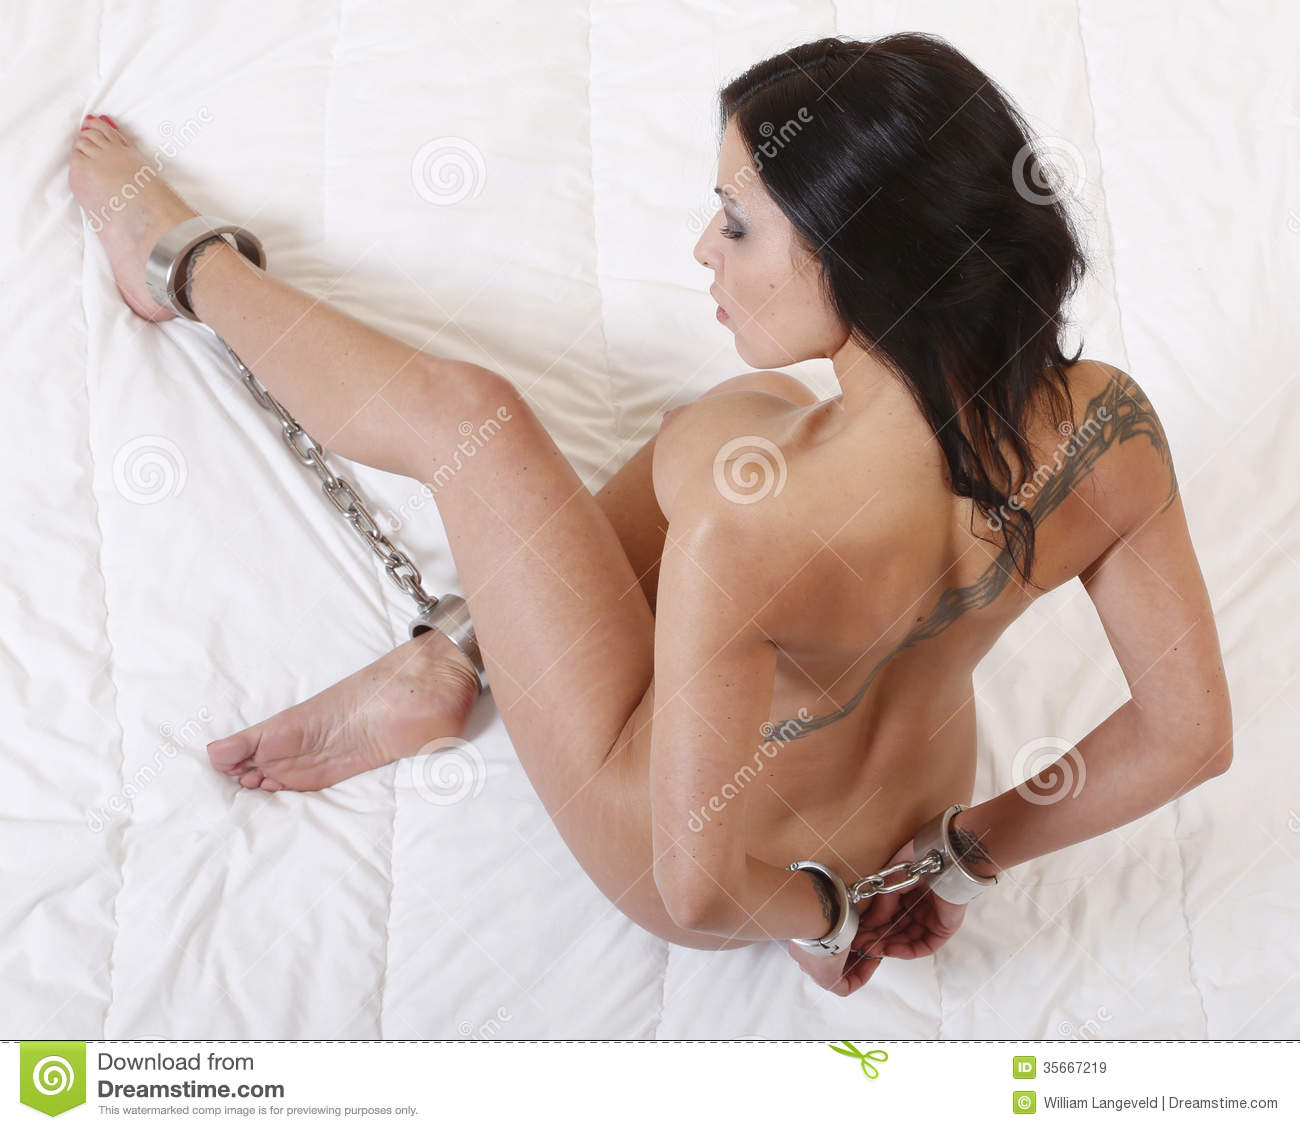 Bound beautiful nude women Beautiful Nude Or Naked Woman Handcuffed Stock Image Image Of Prison Scary 35667219